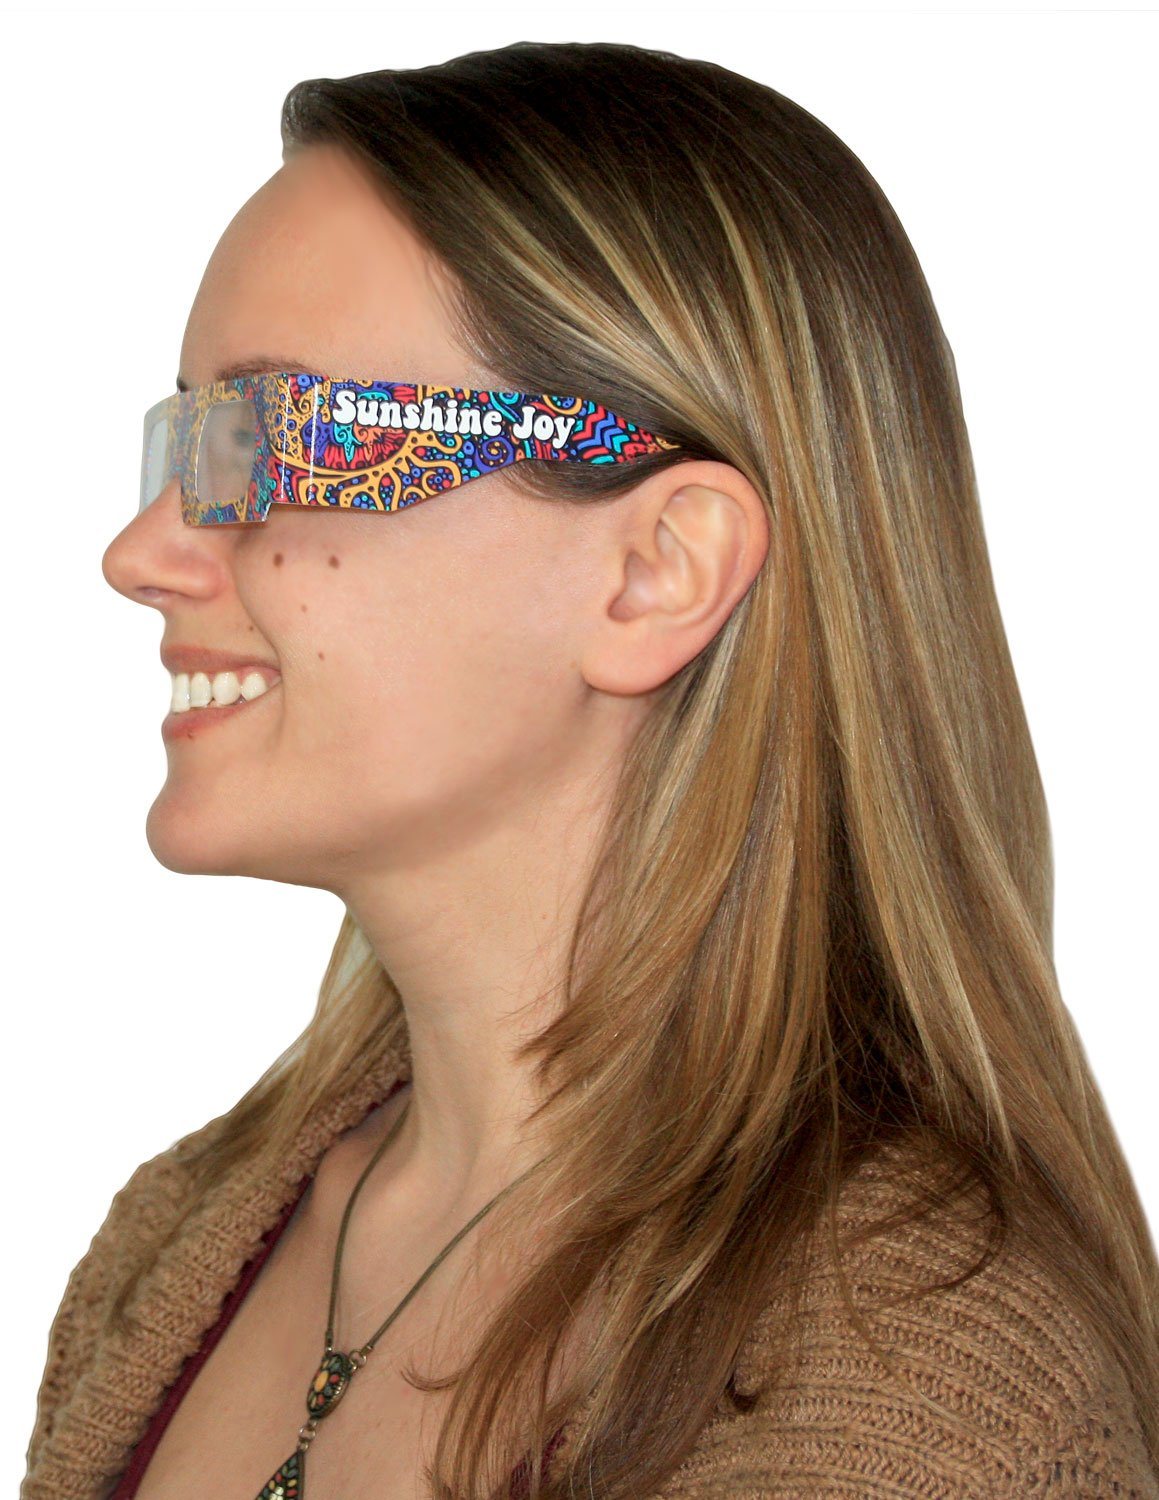 Card Stock Sunshine Joy 3D Glasses Amazing 3-D Effects on all 3-D Reactive Images For Indoor Use Only 5 PACK